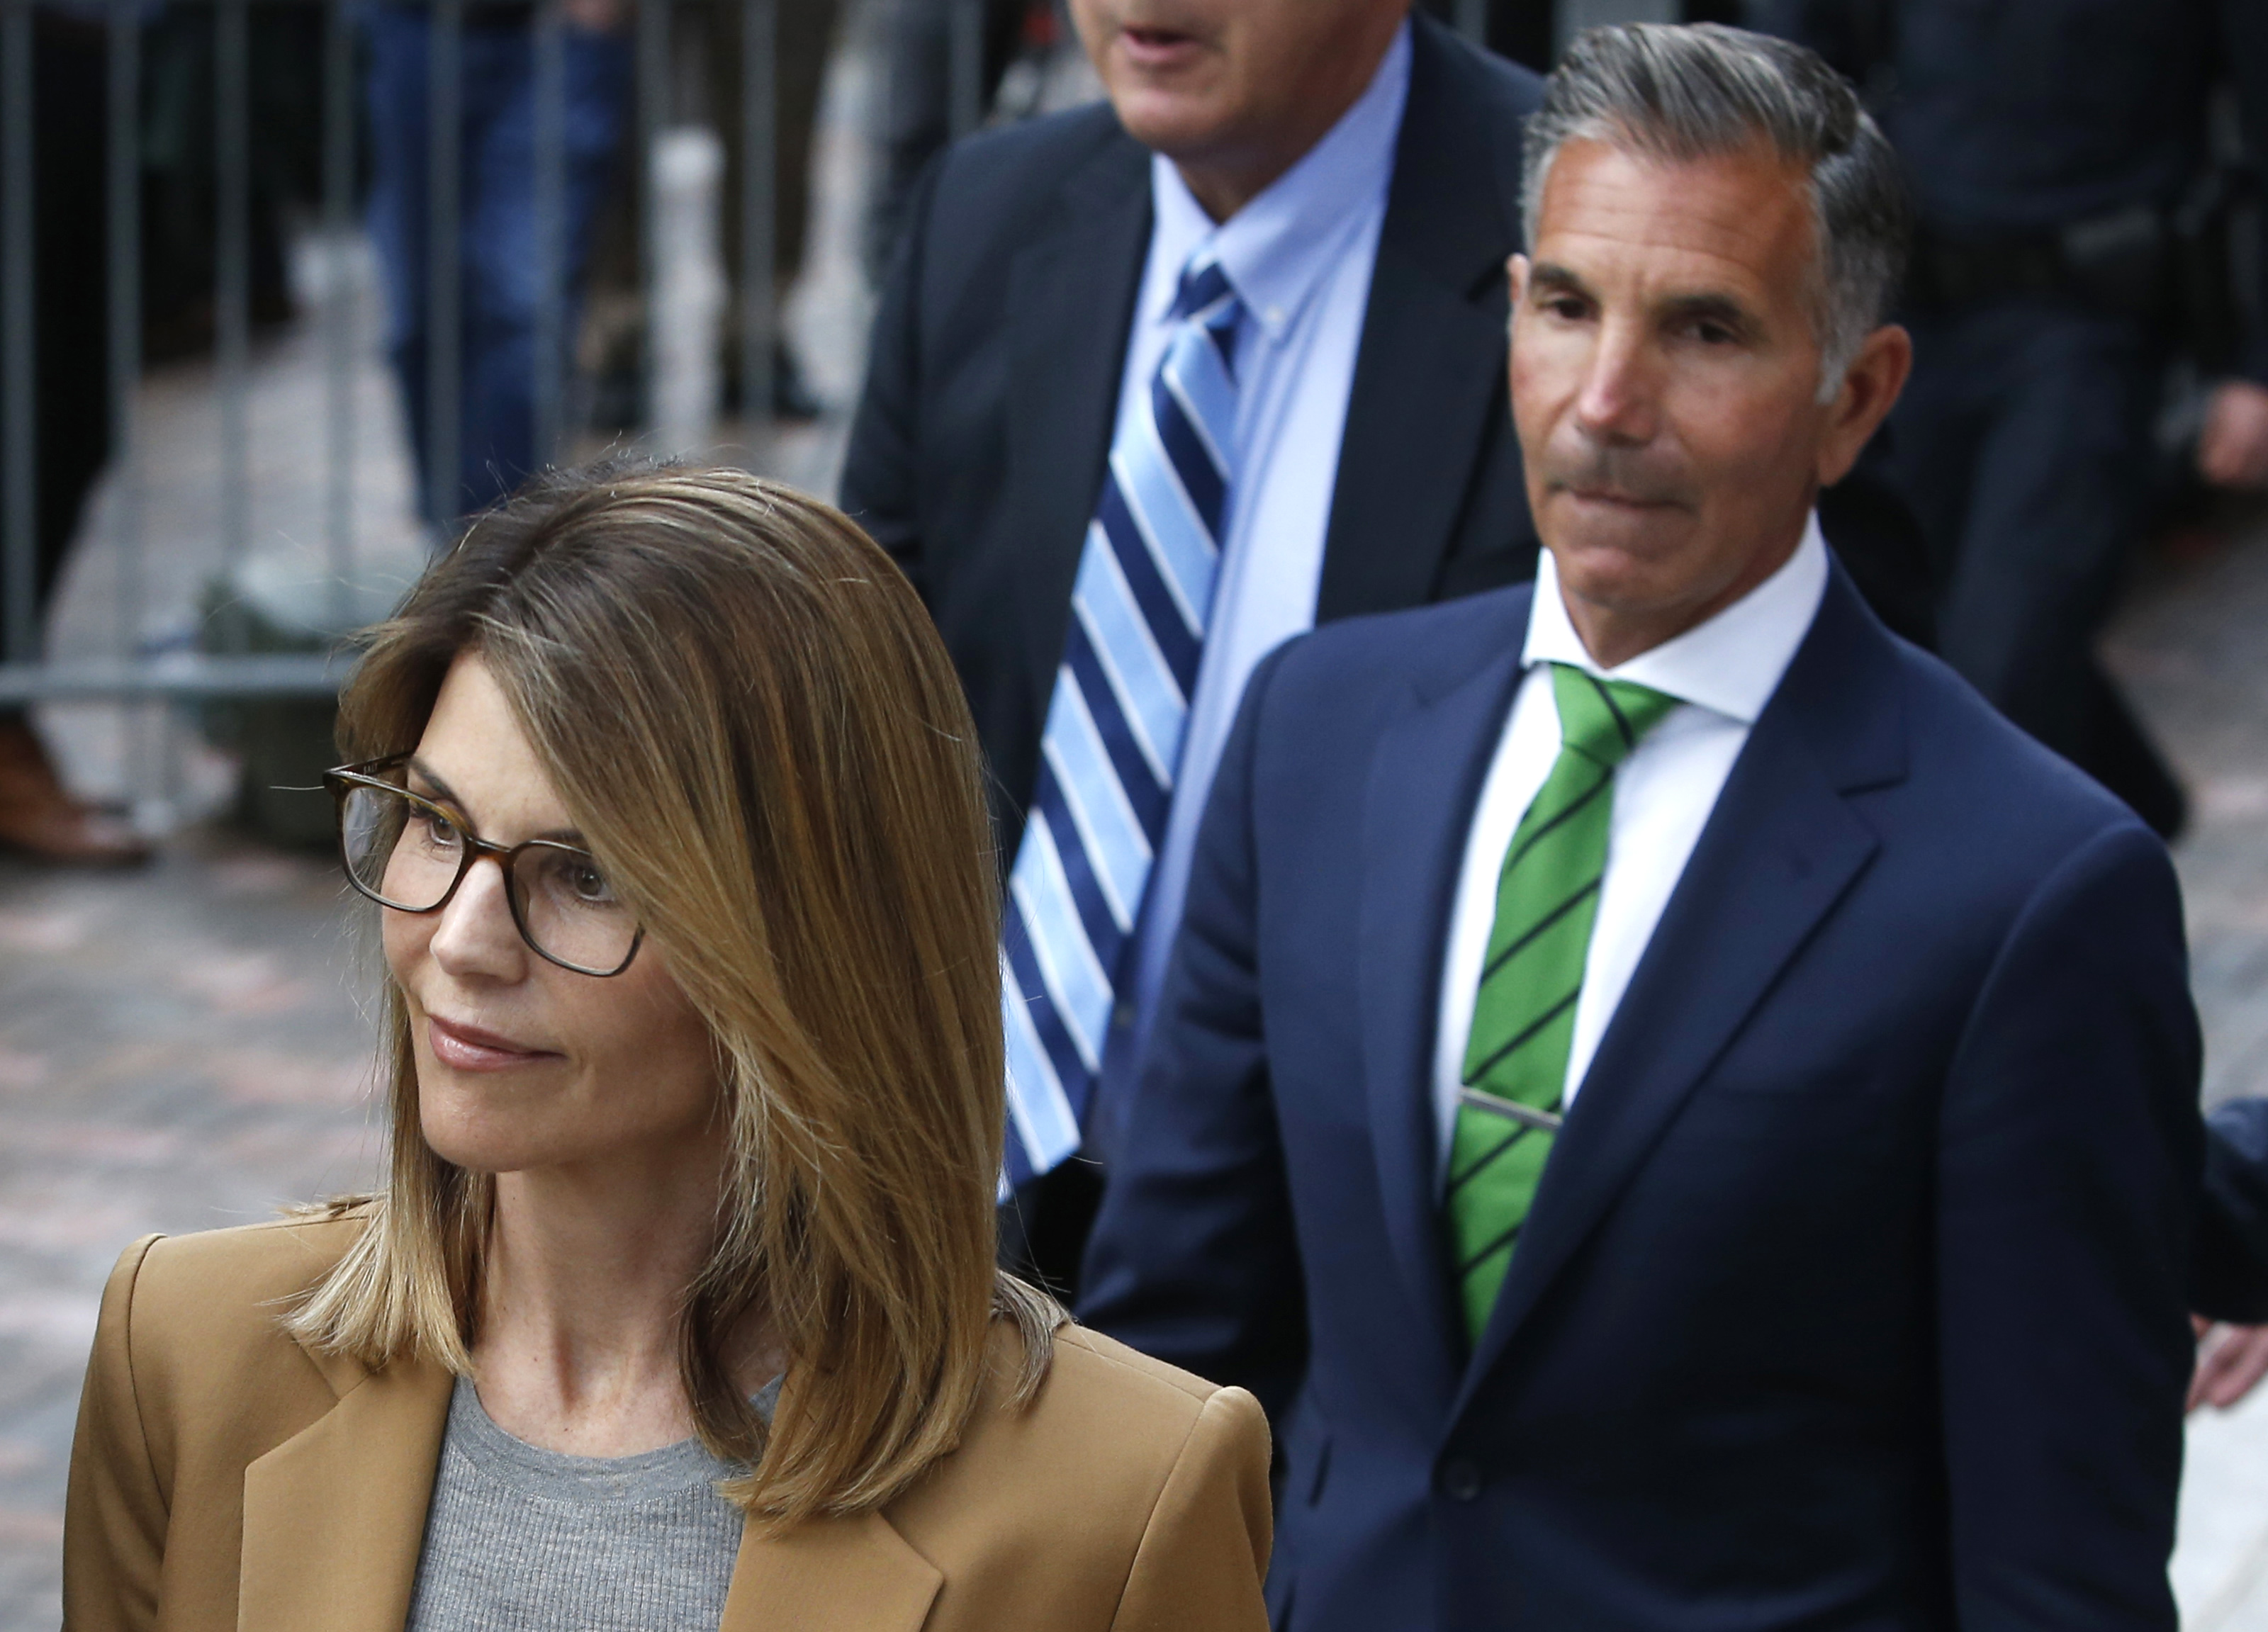 Lori Laughlin and husband enter court 2019